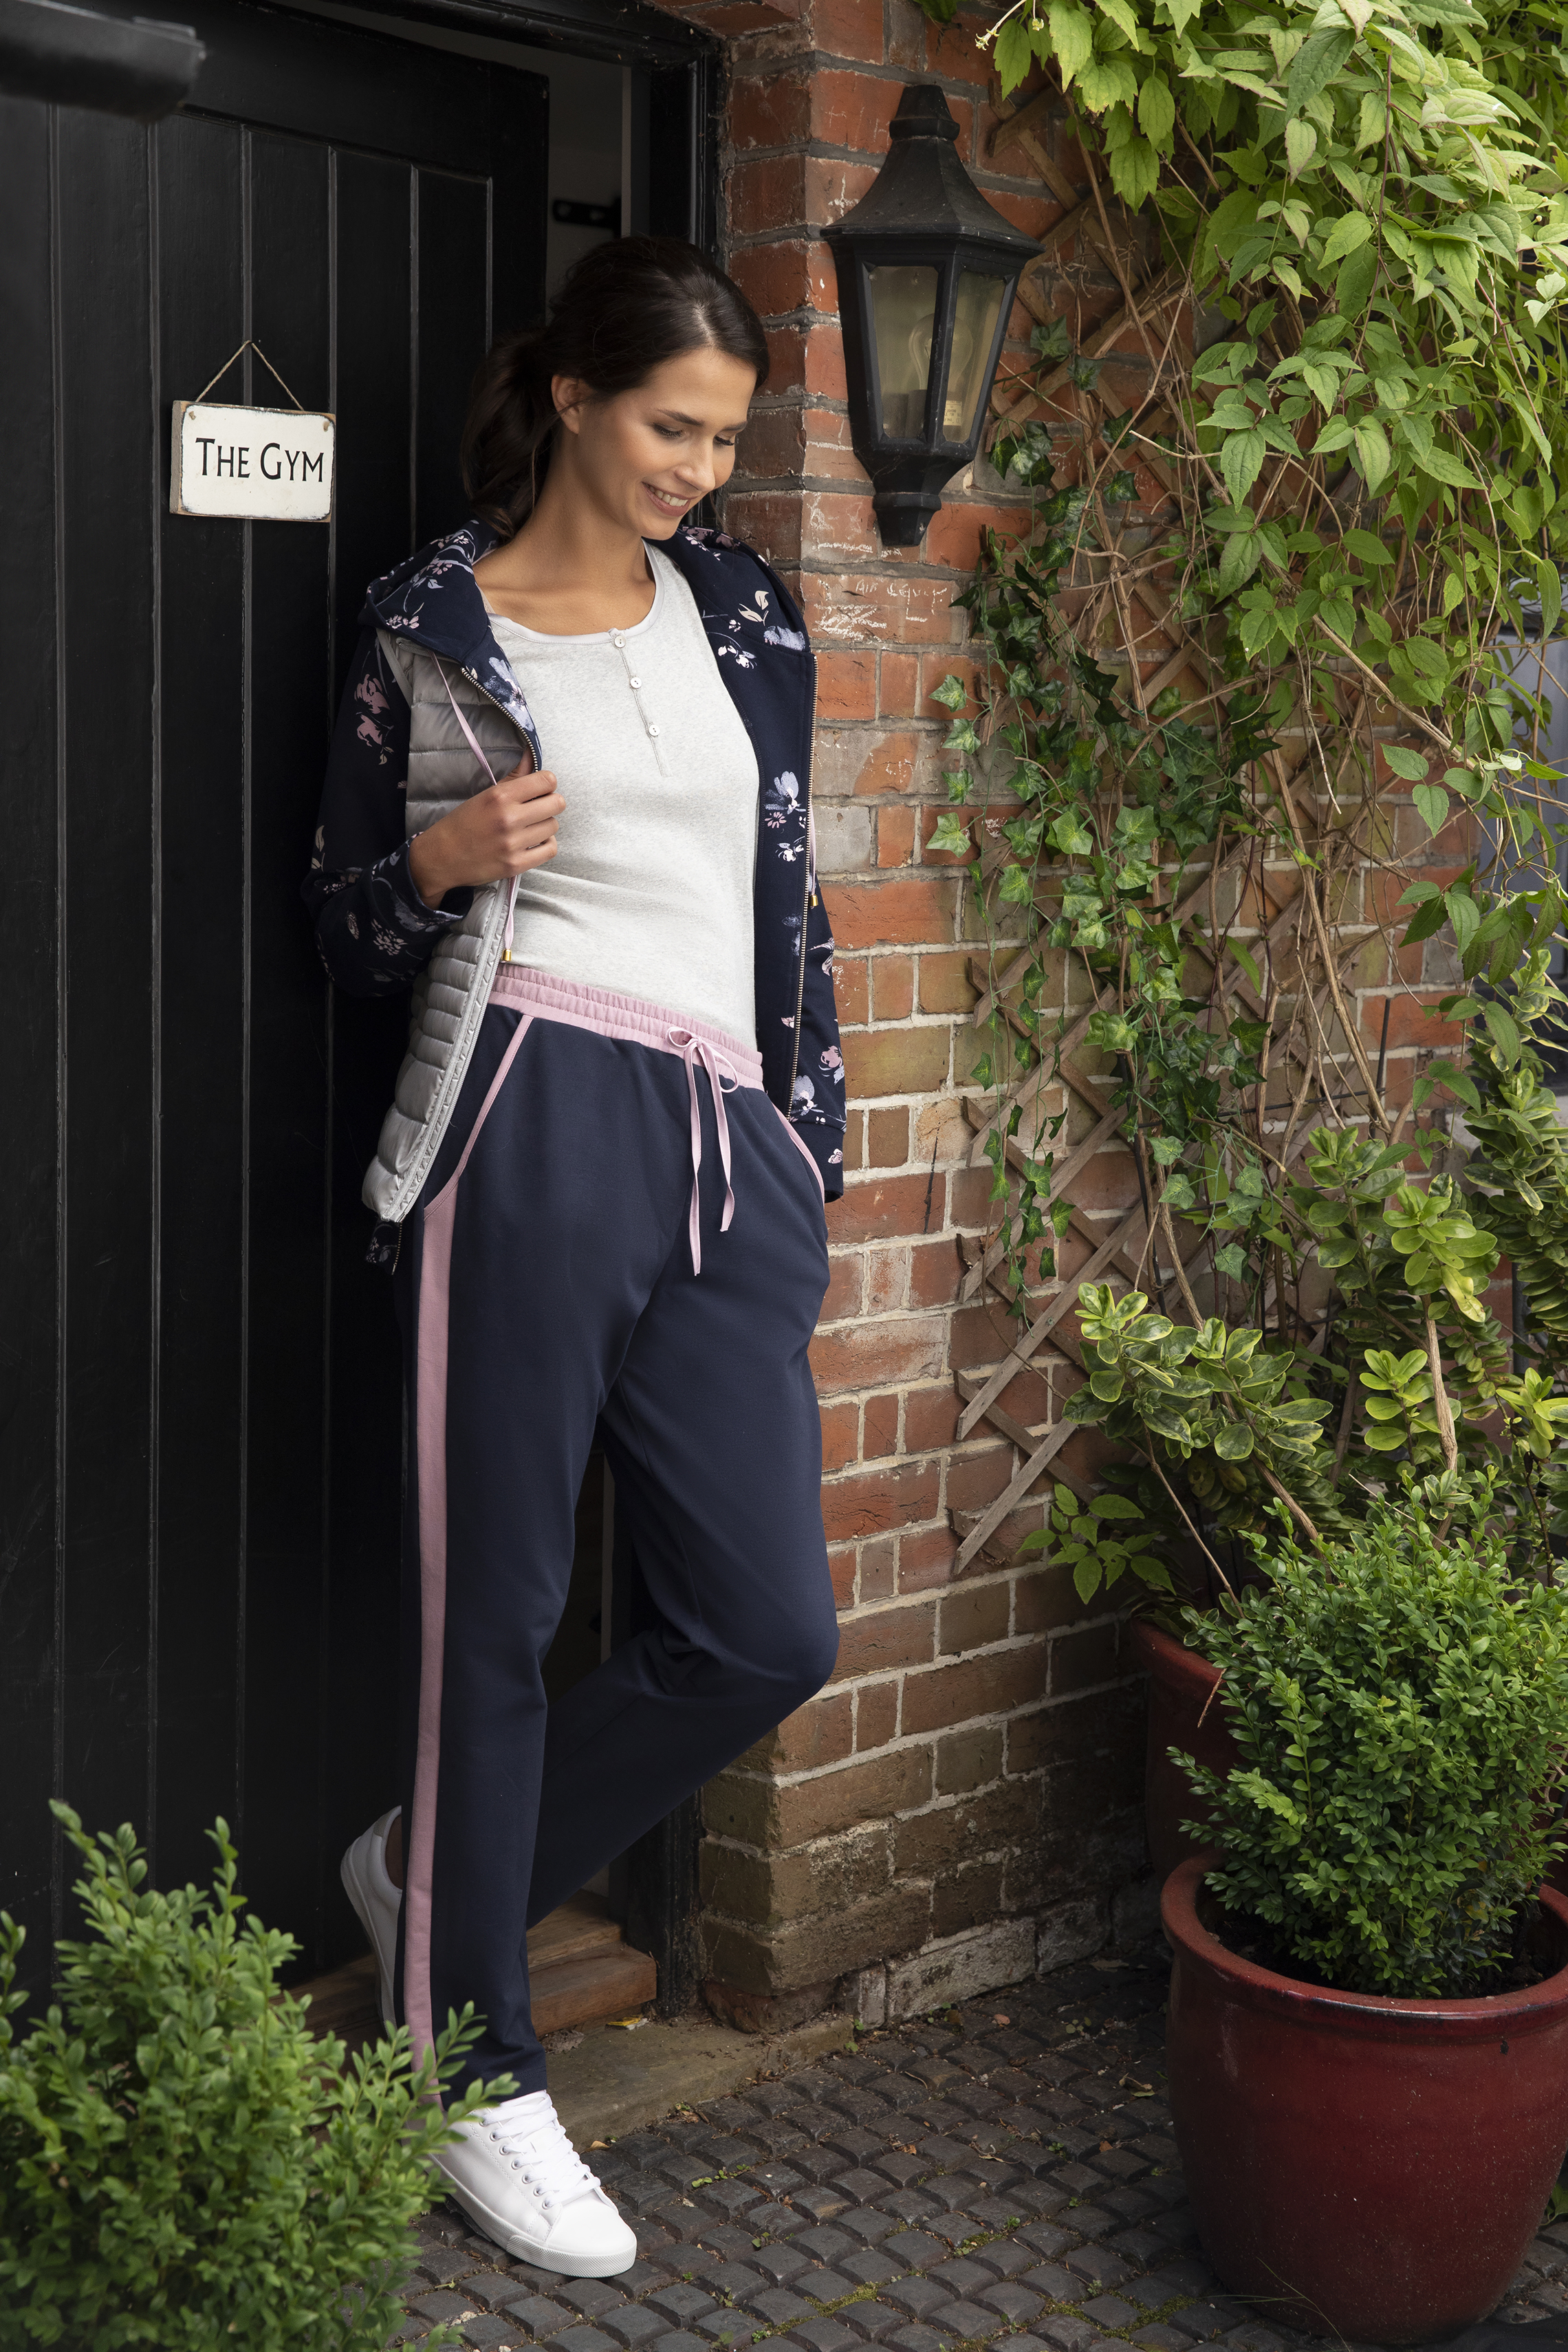 Introducing our brand-new leisurewear collection